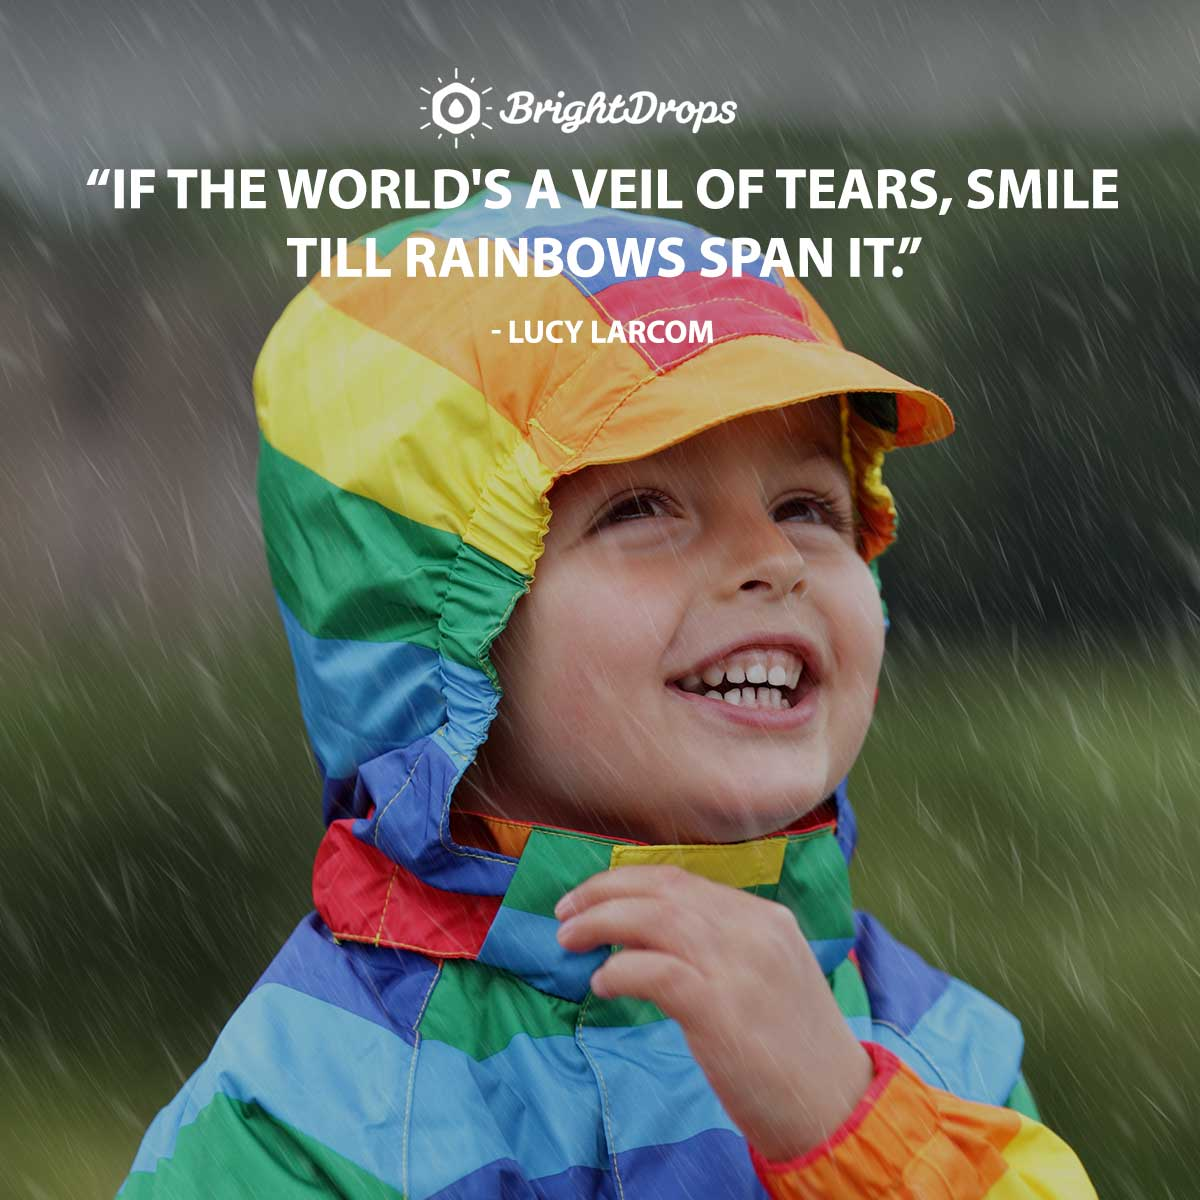 If the world's a veil of tears, Smile till rainbows span it. -Lucy Larcom